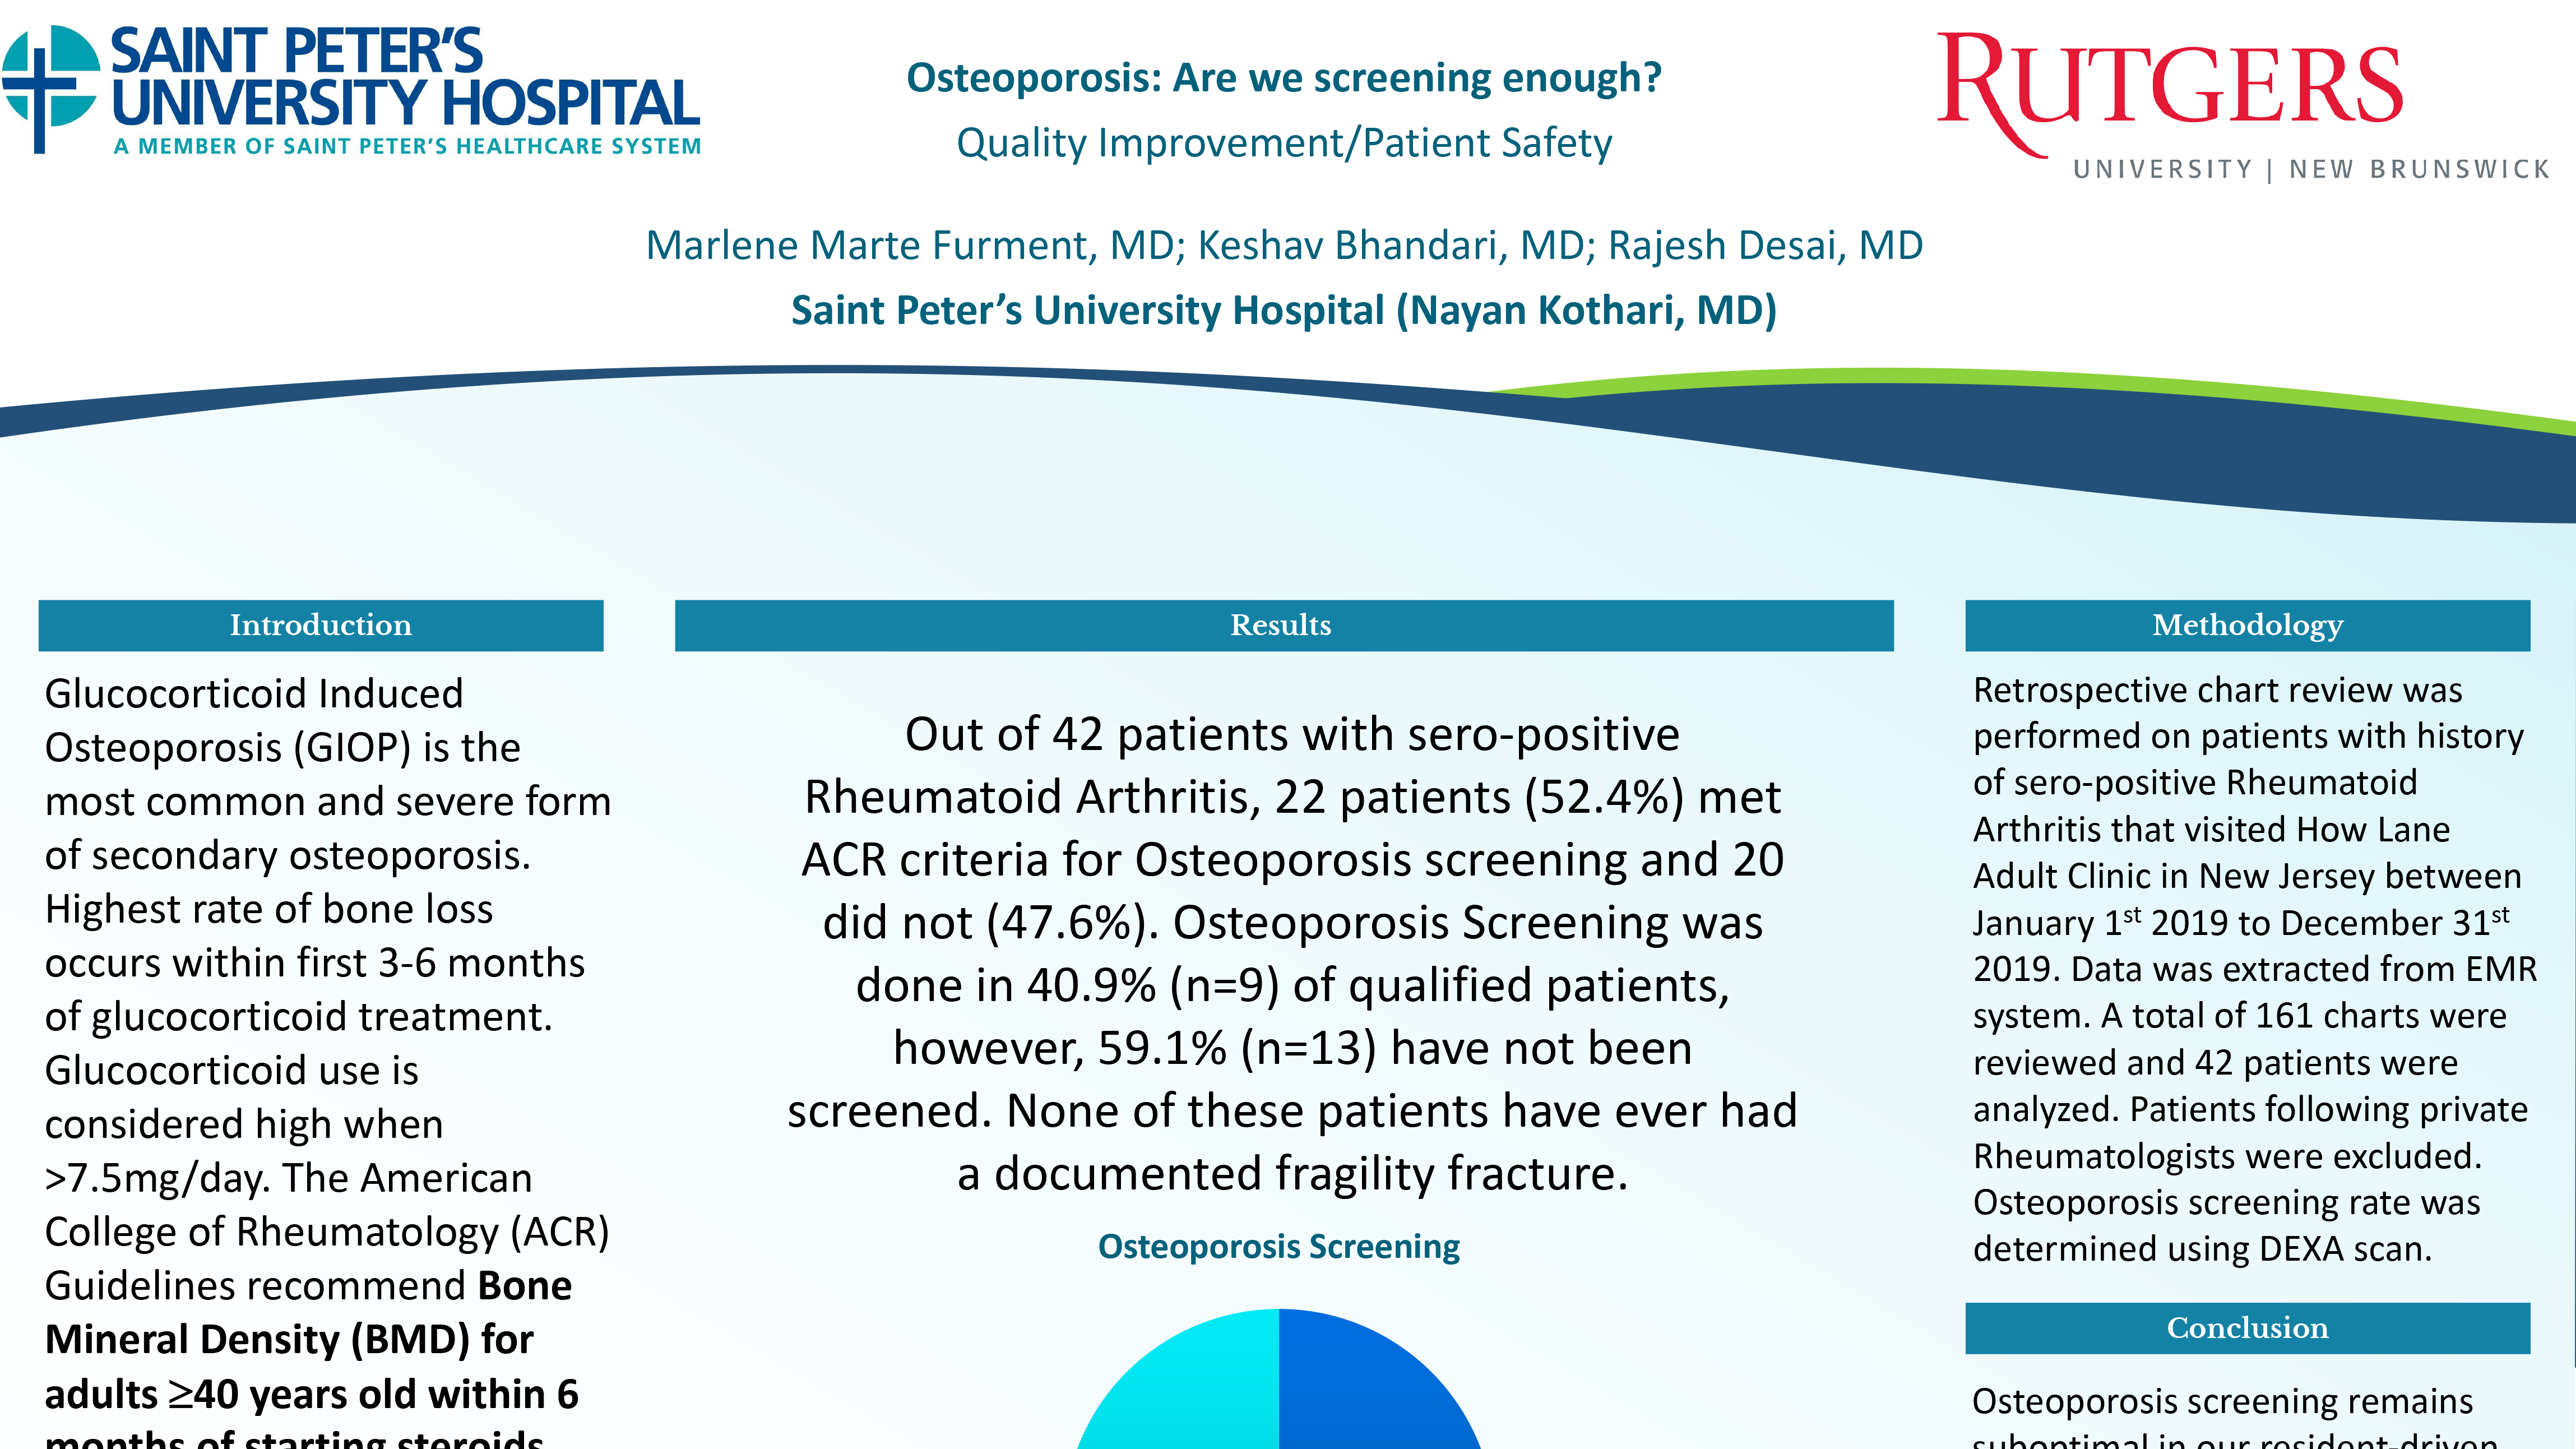 8_Q1_Osteoporosis Are we screening enough